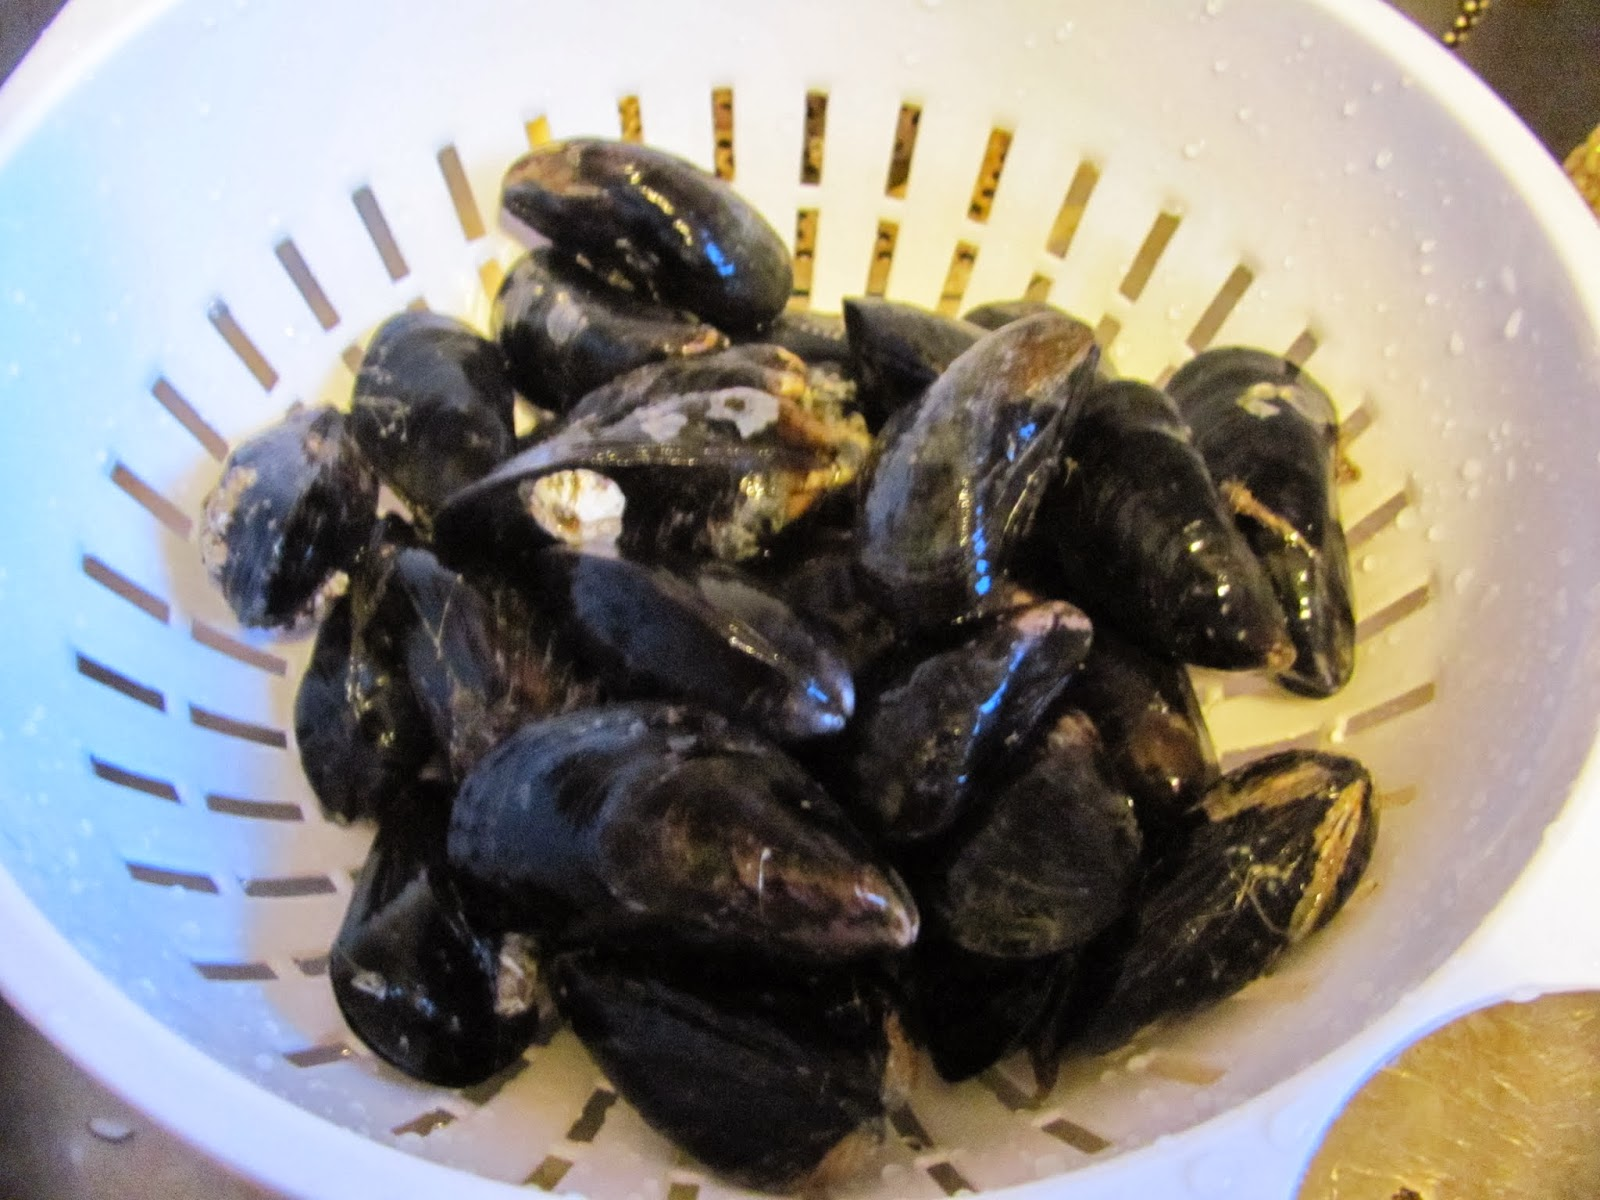 Cleaning the Mussels